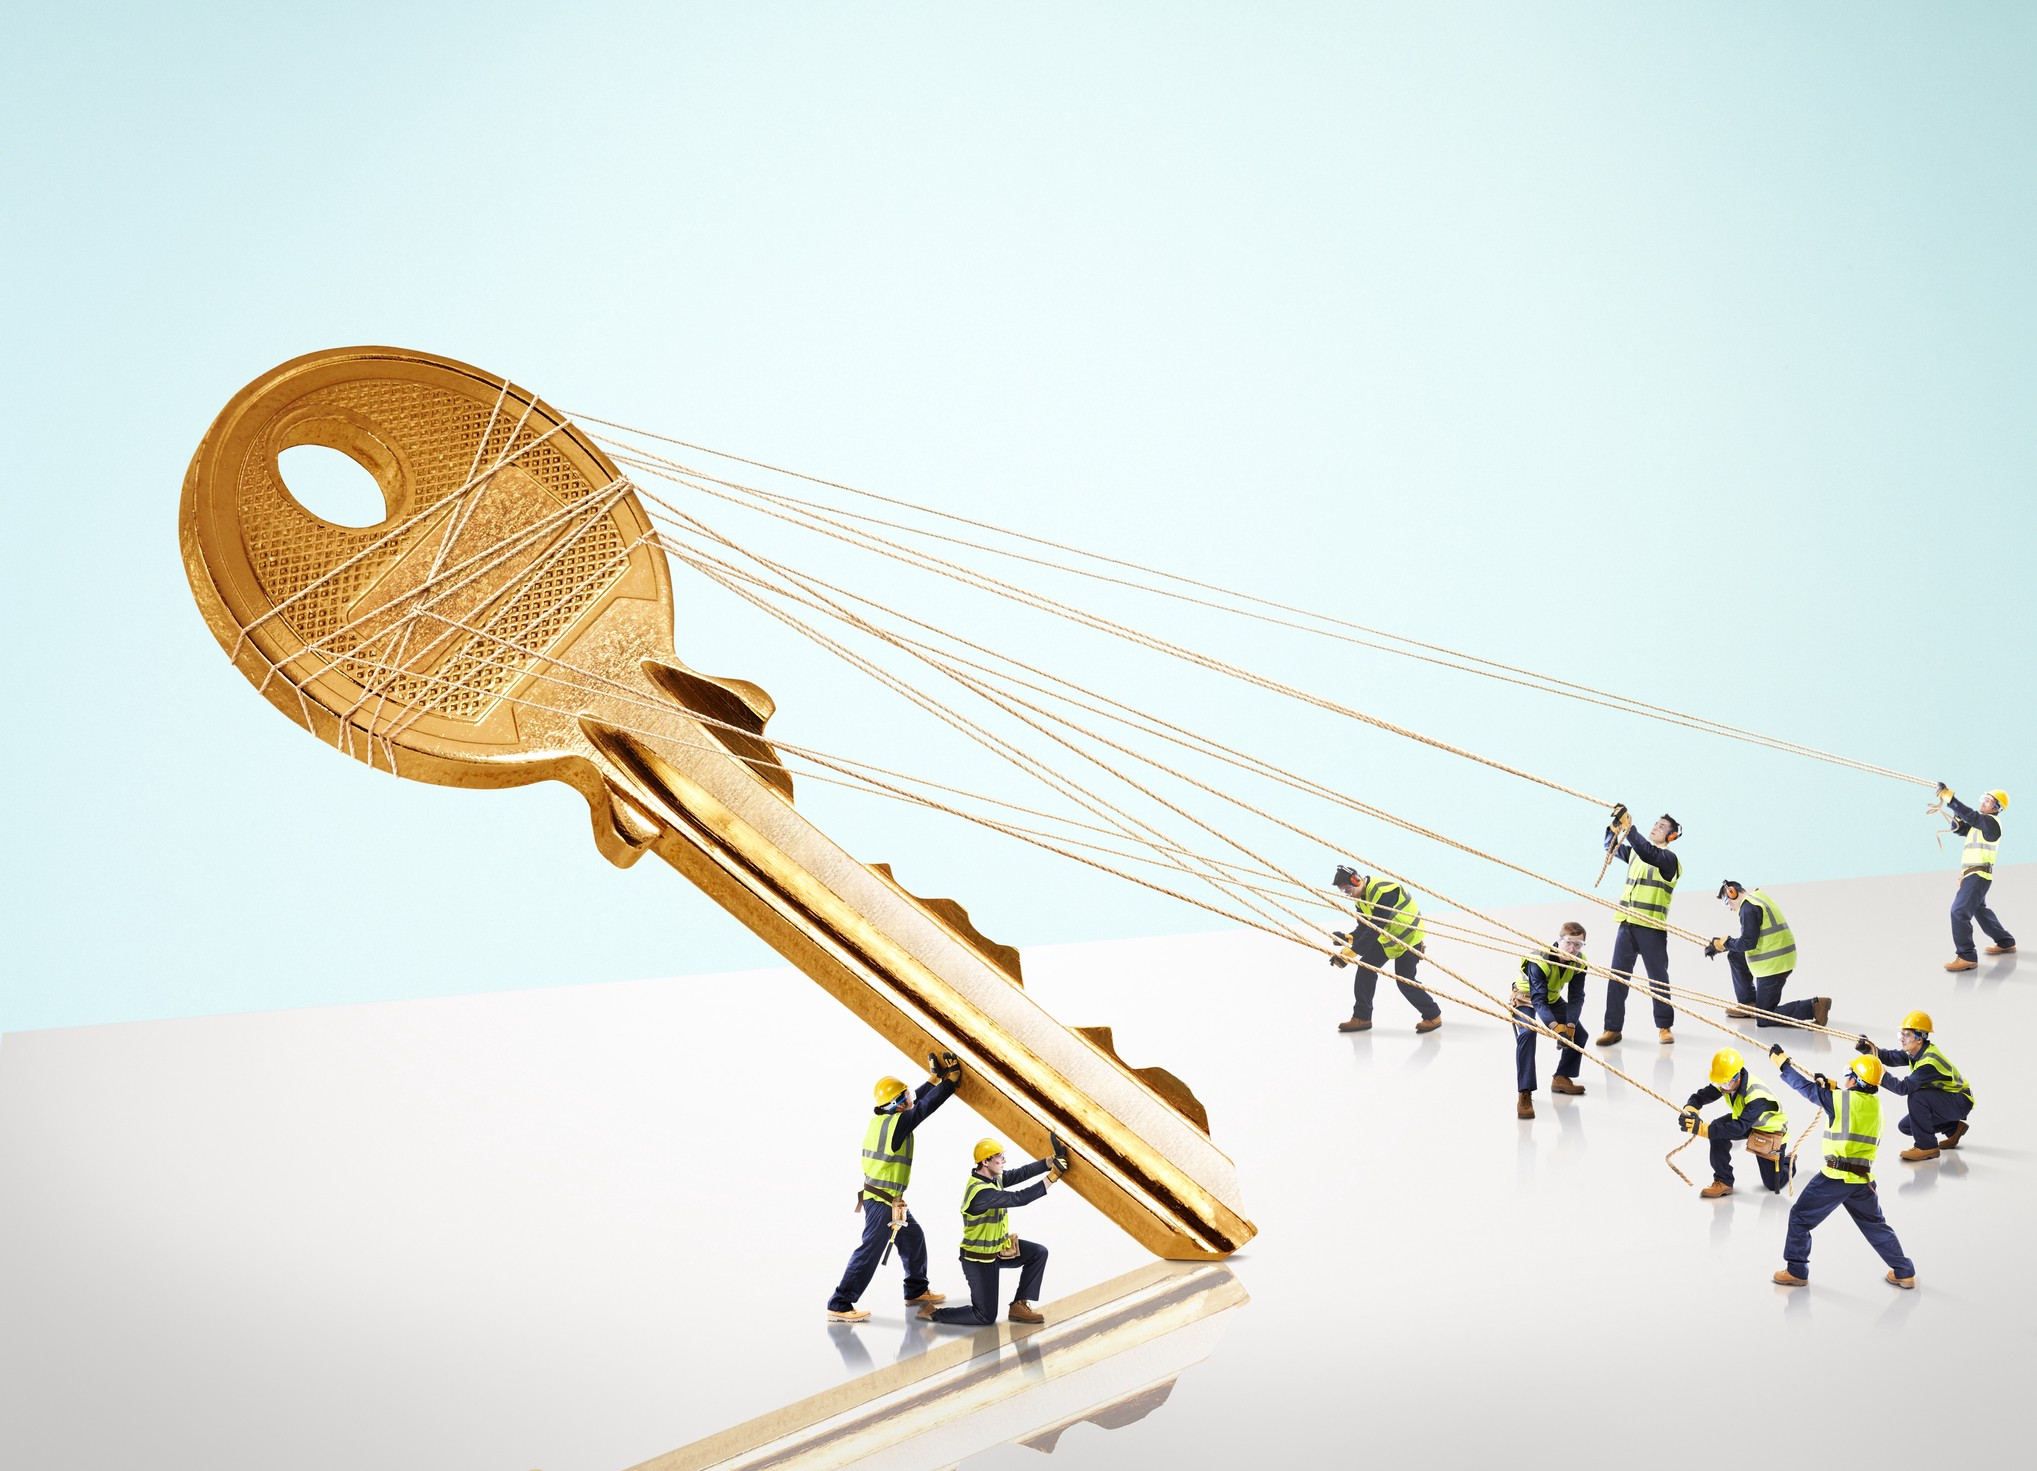 A group of miniature builders trying to erect and pull a giant gold key.